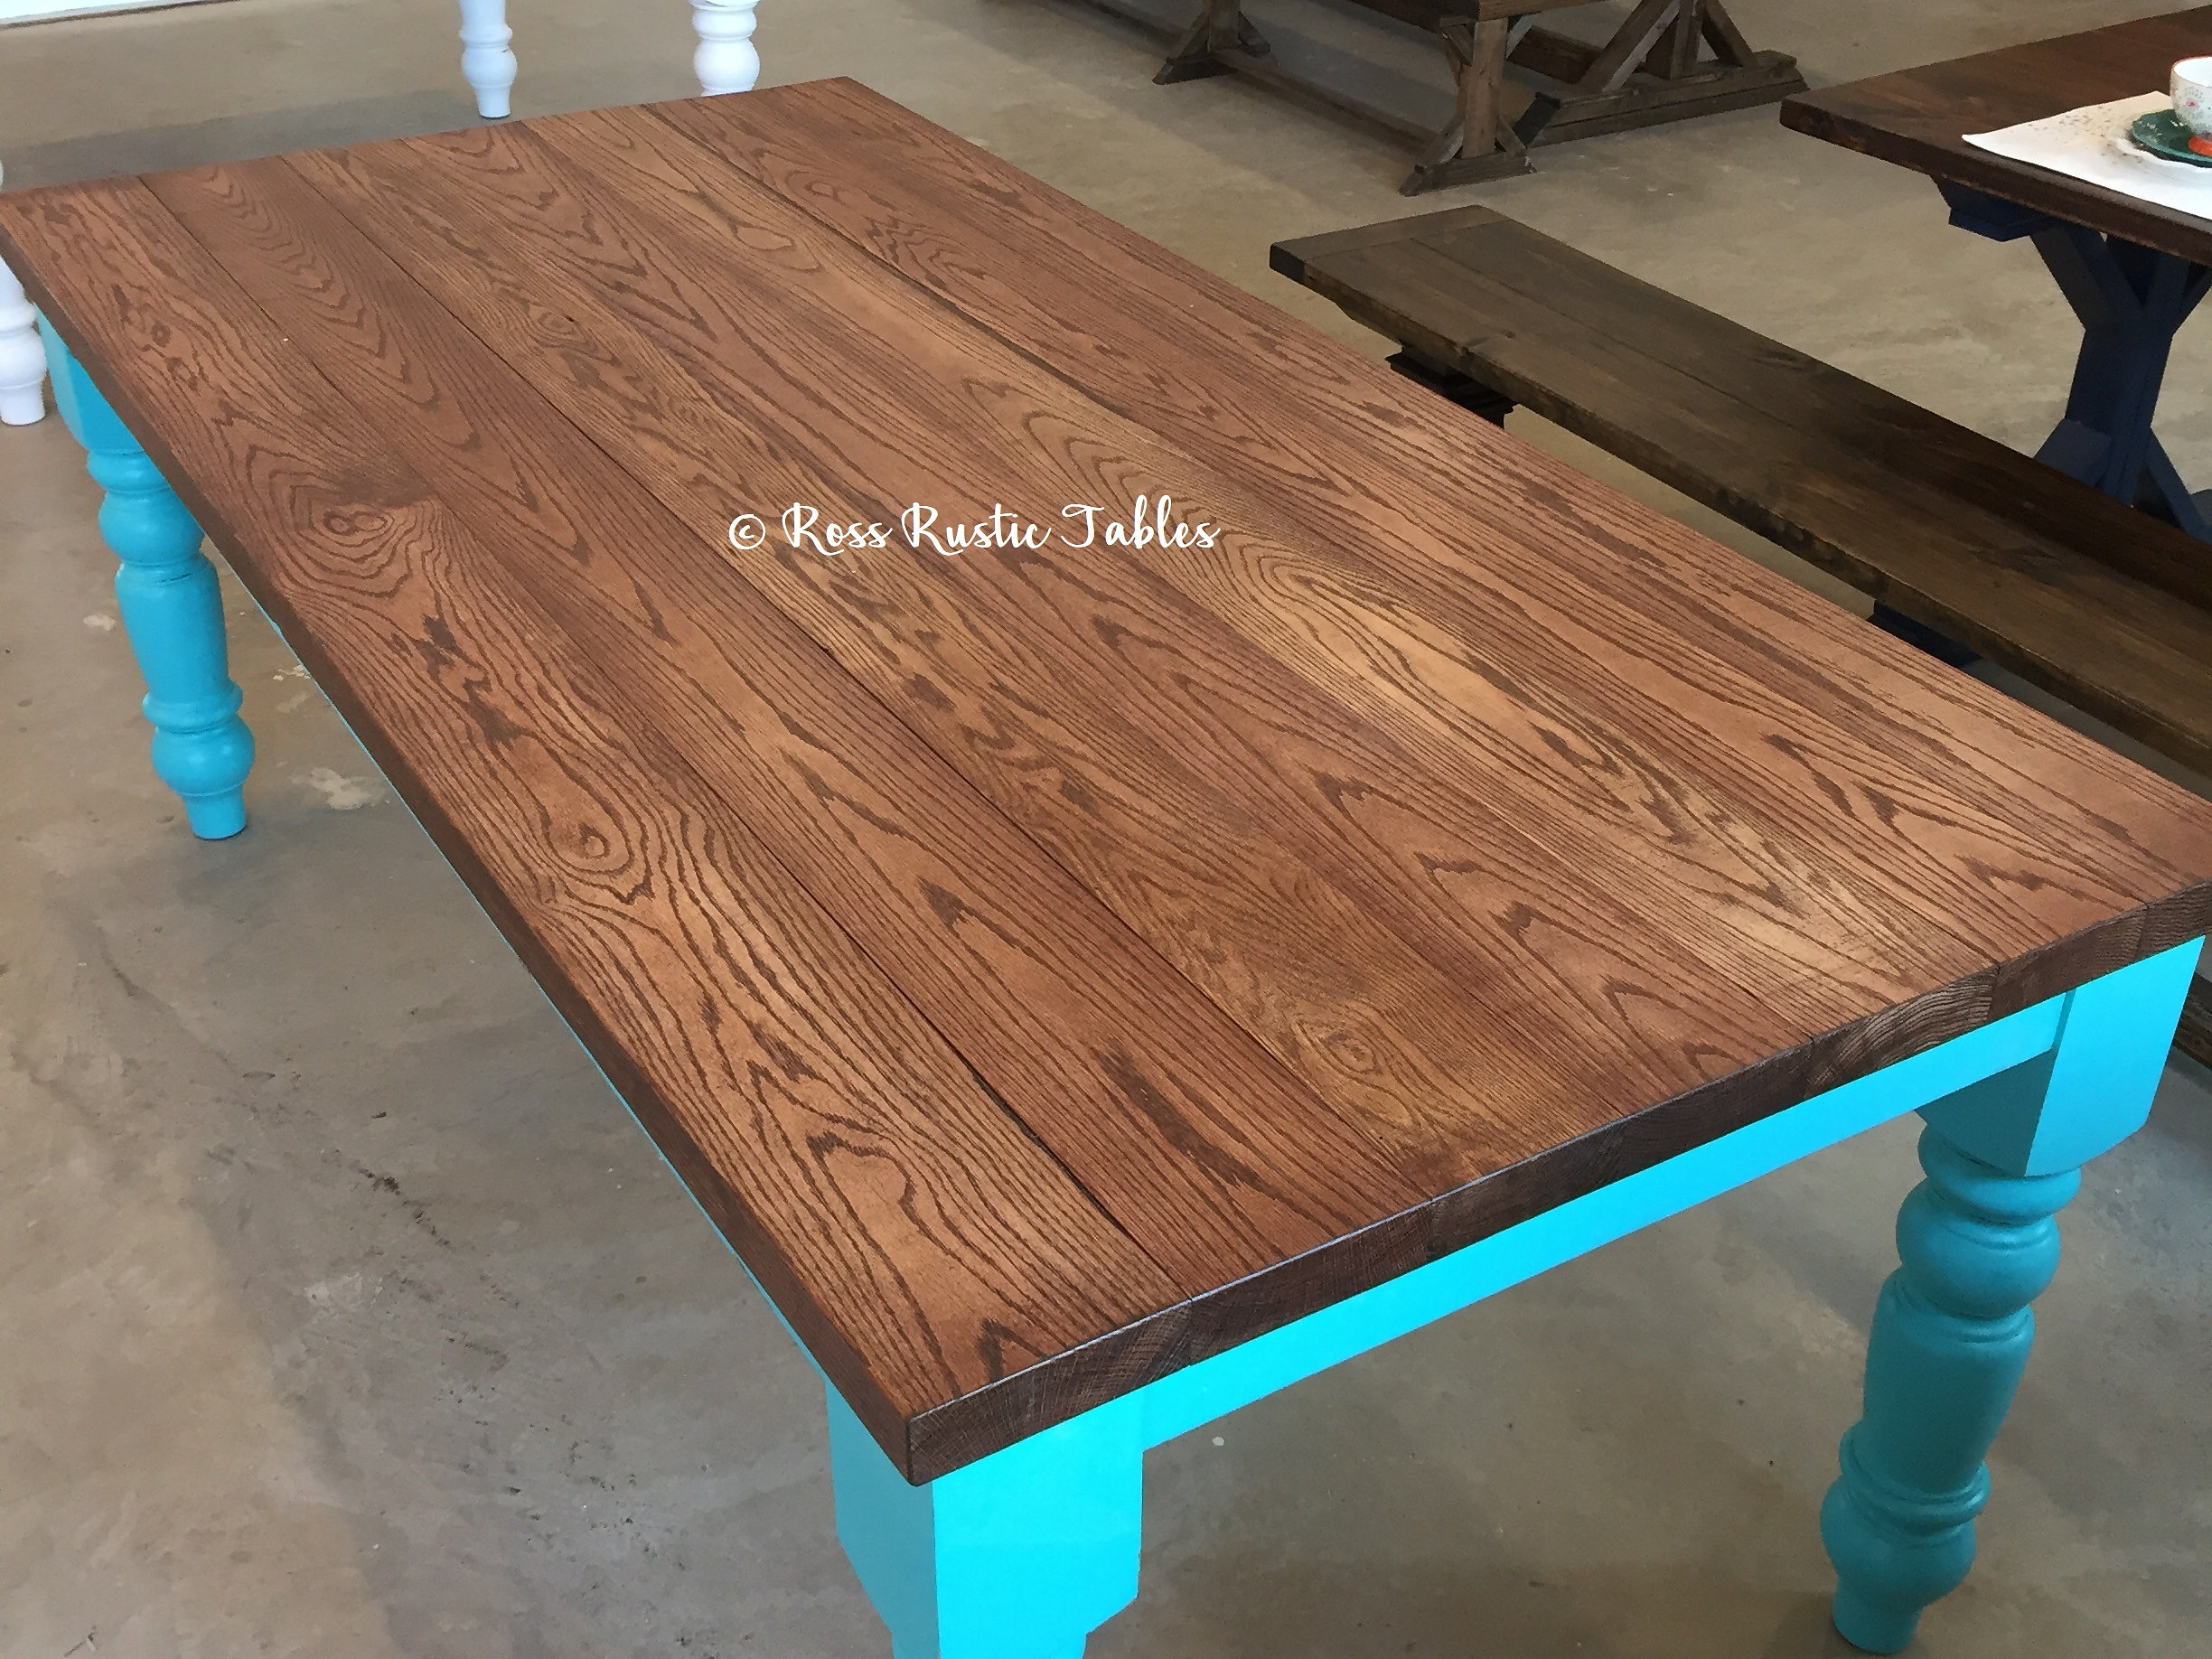 ... Solid Wood Farmhouse Table Is The Perfect Addition To Any Home! This  Dining Table Is Perfect For A Large Family Gathering. At Ross Rustic Tables  We Hand ...